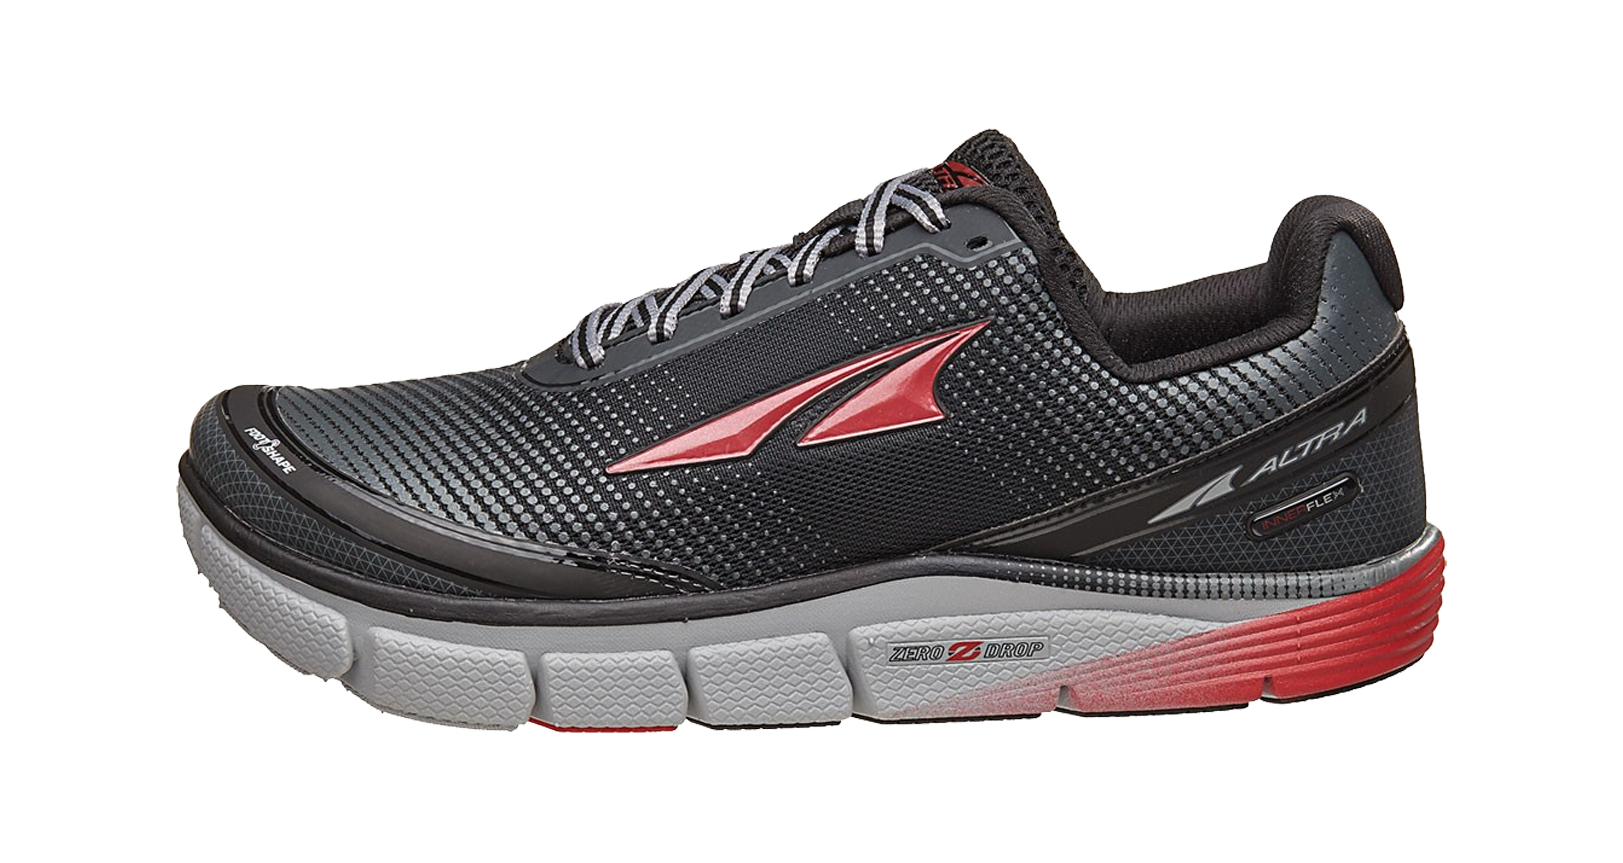 Altra Torin Running Shoes Review